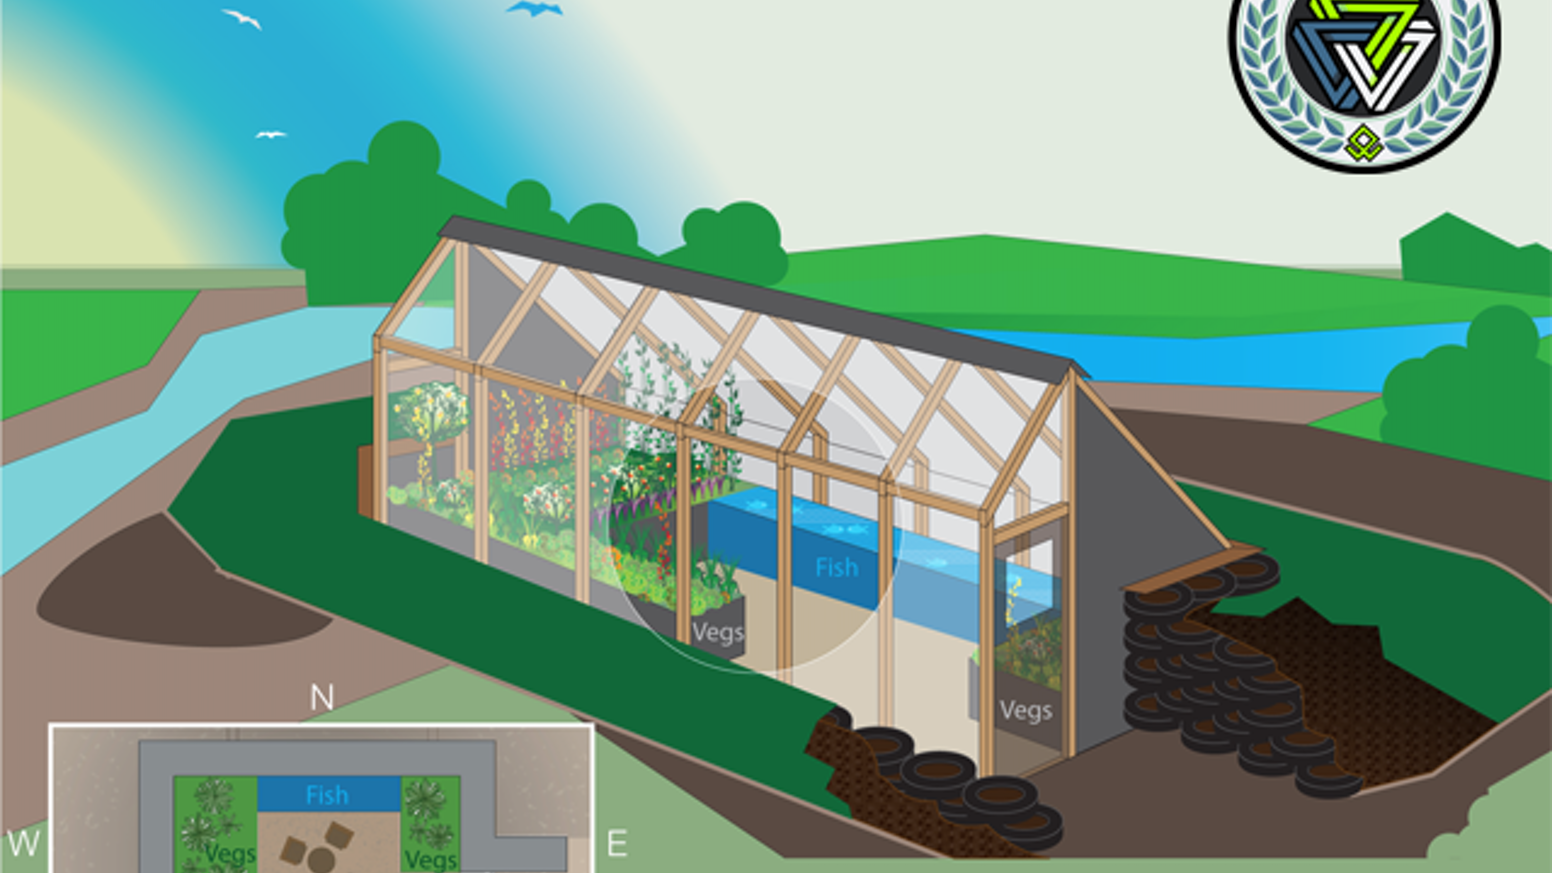 Prototyping the First 100% Off-The-Grid, Affordable, Low-Maintenance Greenhouse using Earthship Principles and Aquaponics.